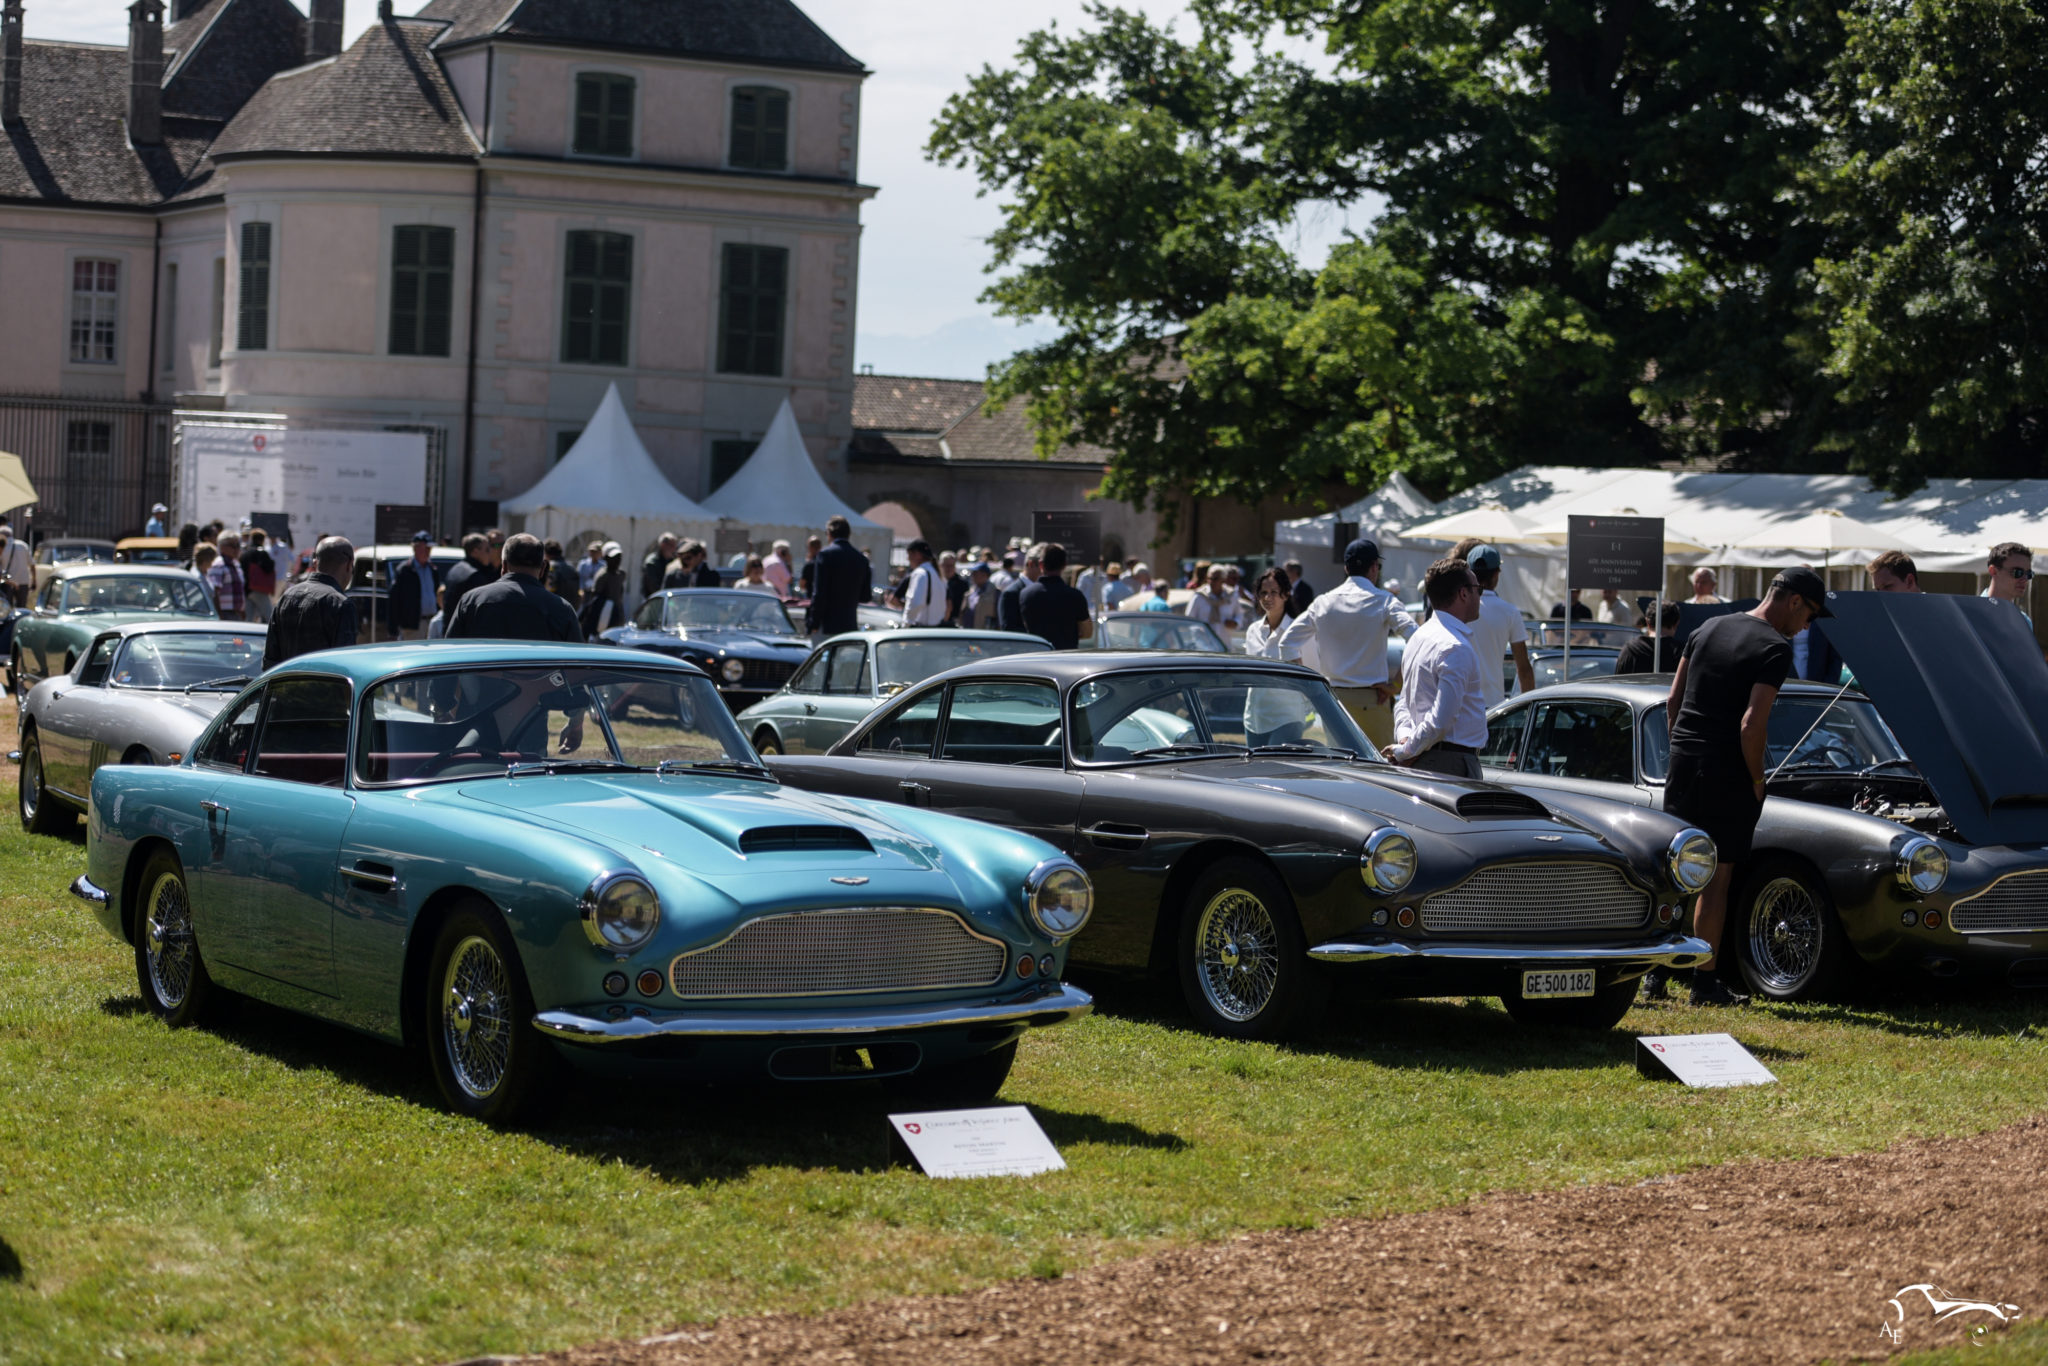 Aston Martin DB4 Series I & II